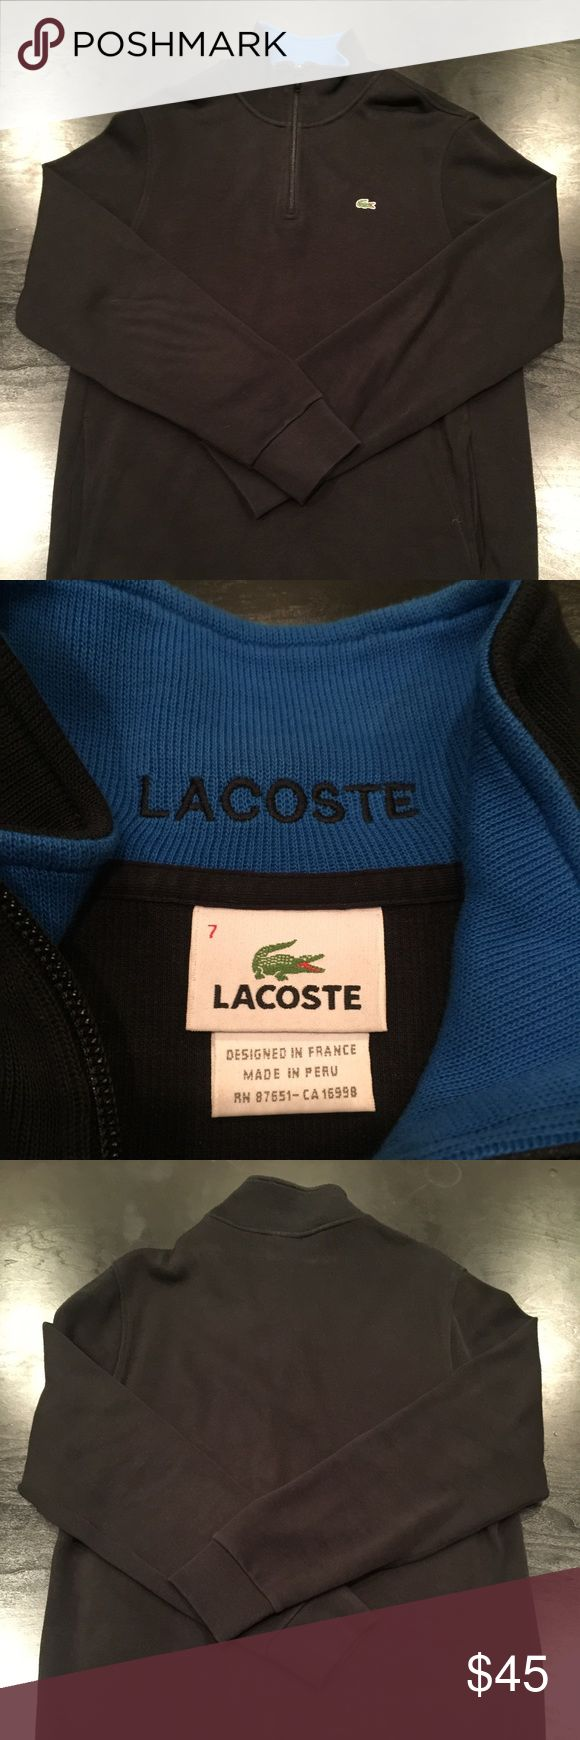 Lacoste Men's Half Zip Sweater Near new condition, only wore twice. No fading or flaws. All black with blue on the inside of the collar. 100% Cotton Lacoste Shirts Sweatshirts & Hoodies